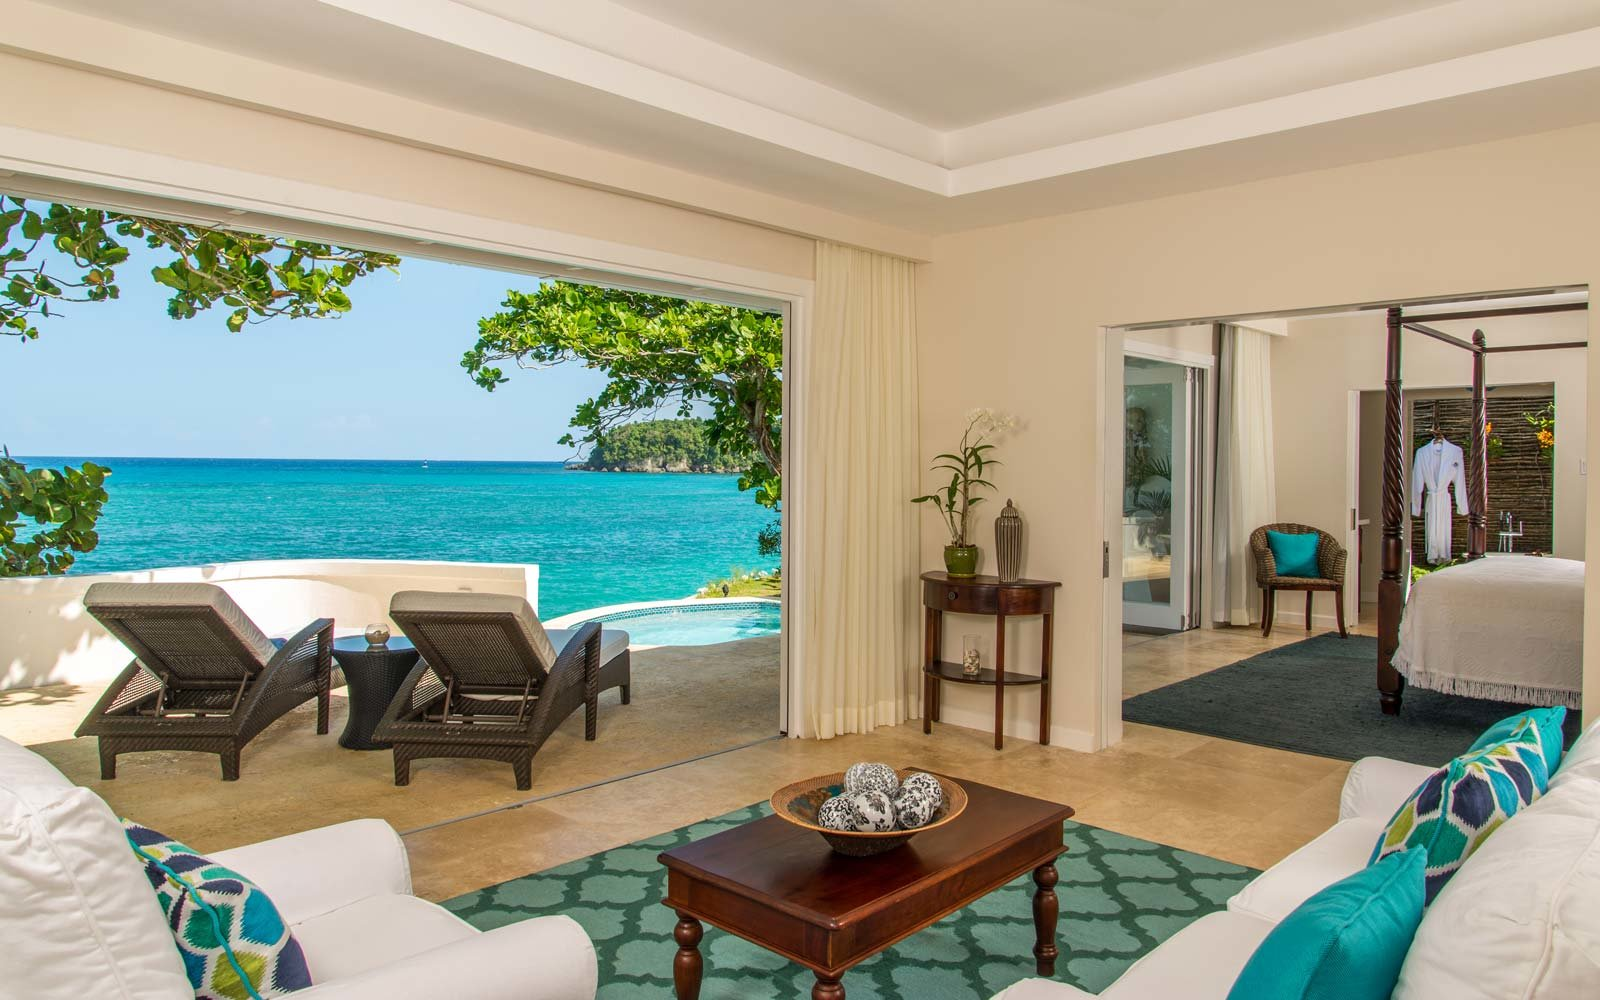 A beach house villa at Jamaica Inn